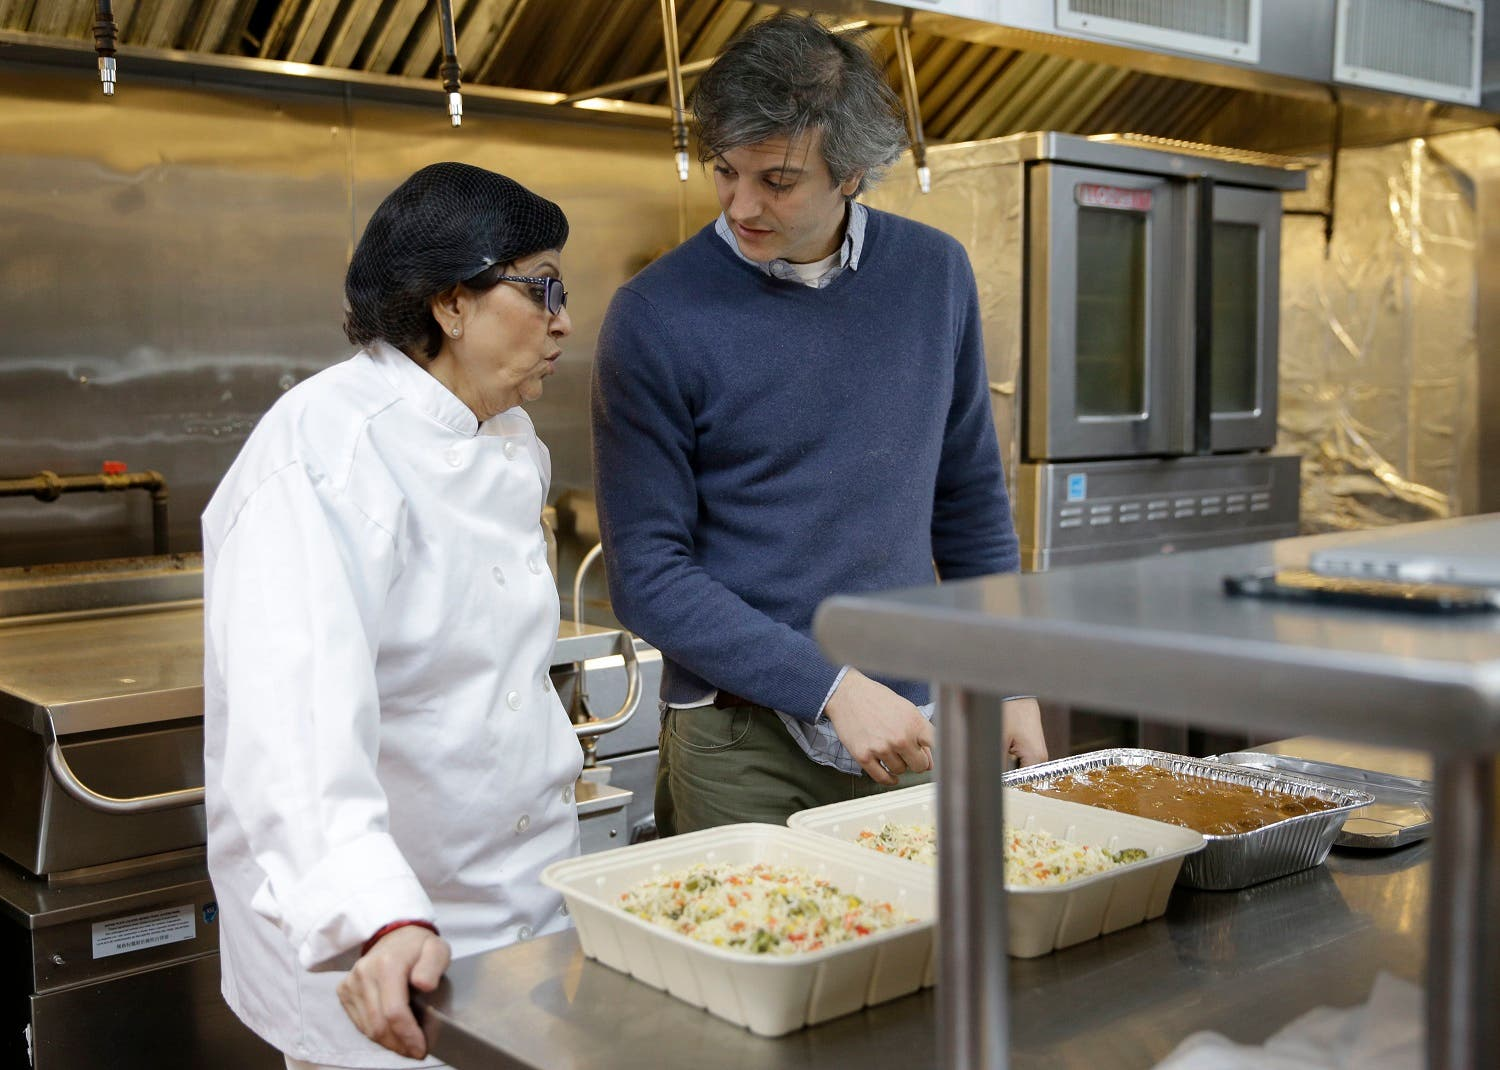 Rachana Rimel, a Nepalese refugee, left, talks with head chef Juan Suarez de Lezo while they cook in New York, Tuesday, March 29, 2016. A food delivery service is offering New Yorkers the chance to try some food cooked by some unusual chefs. All seven employees at Eat Offbeat are either refugees or asylum-seekers who fled their home countries. They're cooking foods from those places, including Iraq and Nepal. (AP)